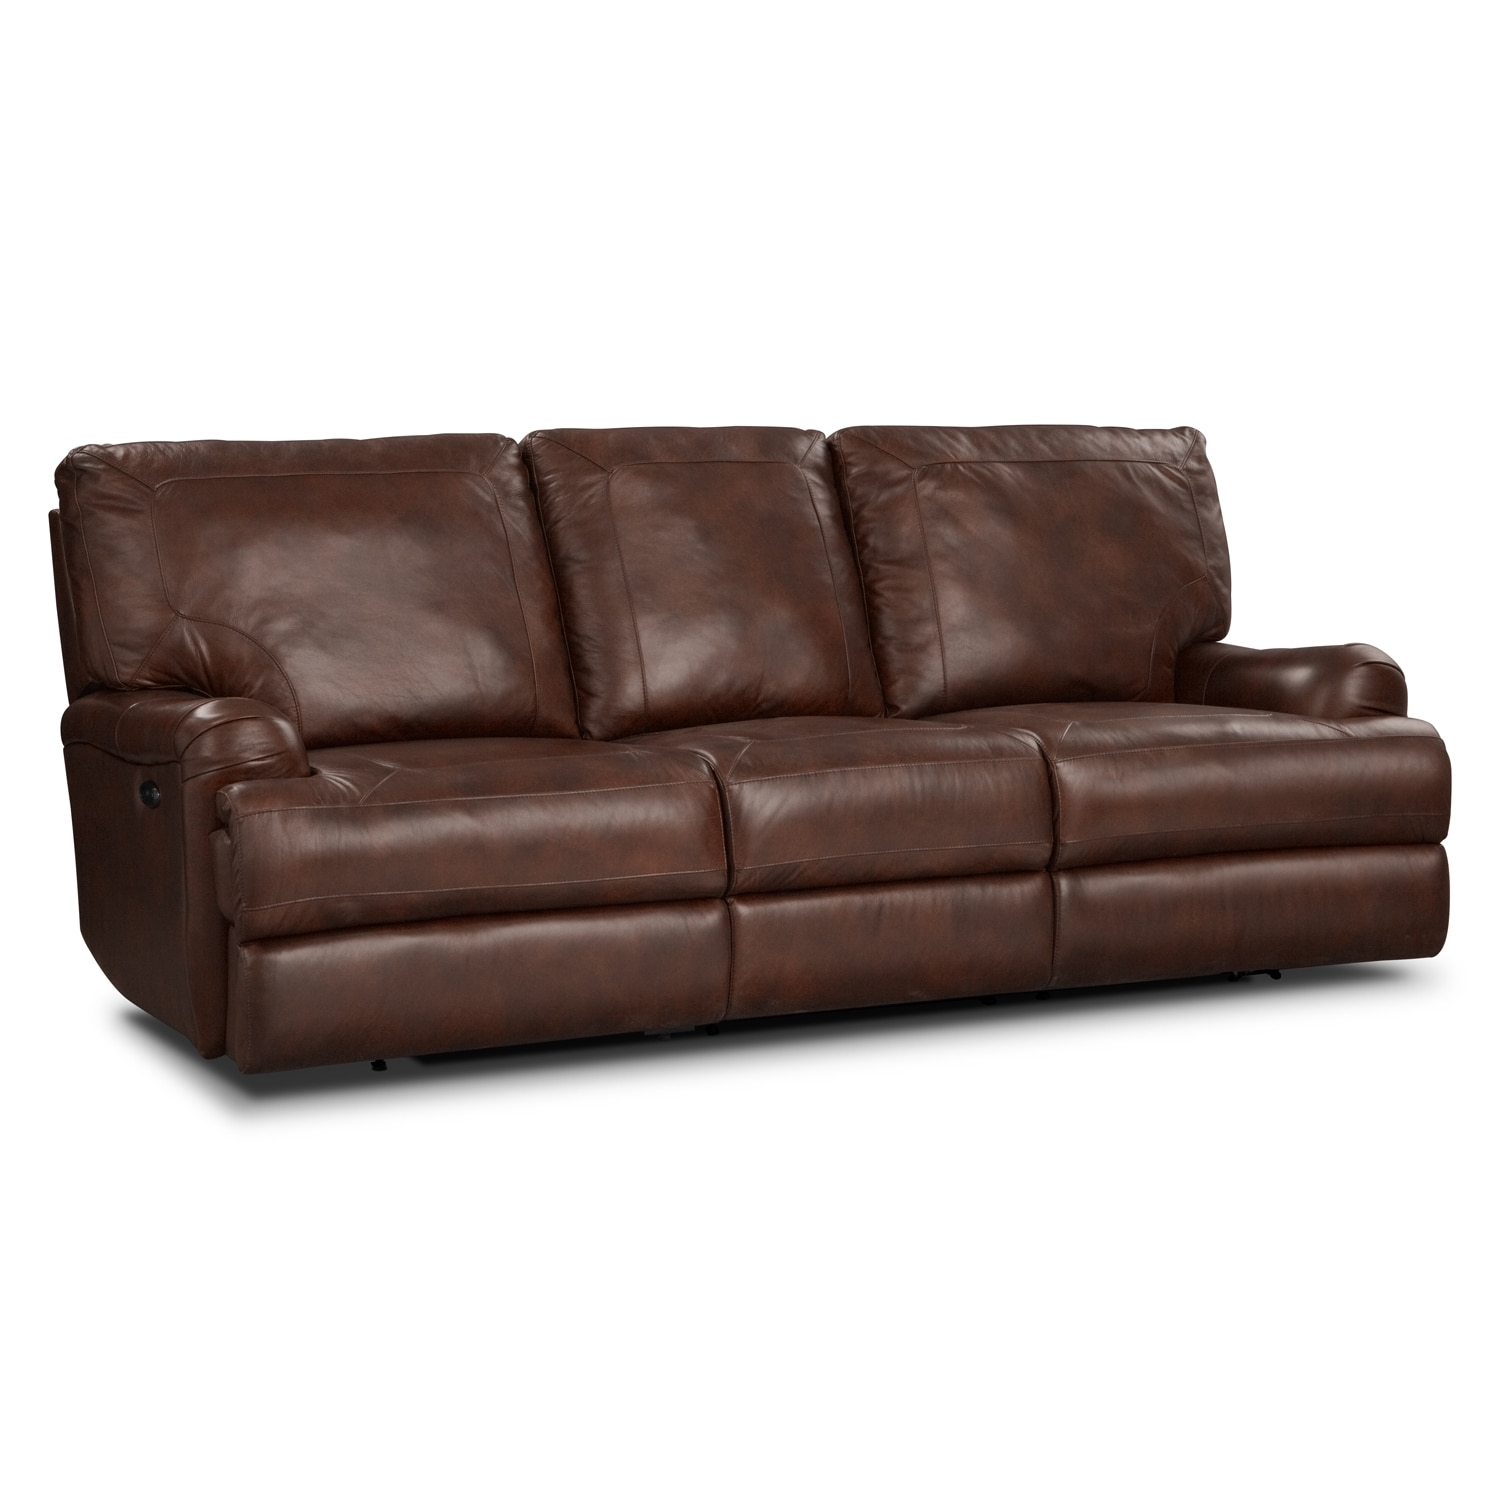 Living Room Furniture - Kingsway Power Reclining Sofa